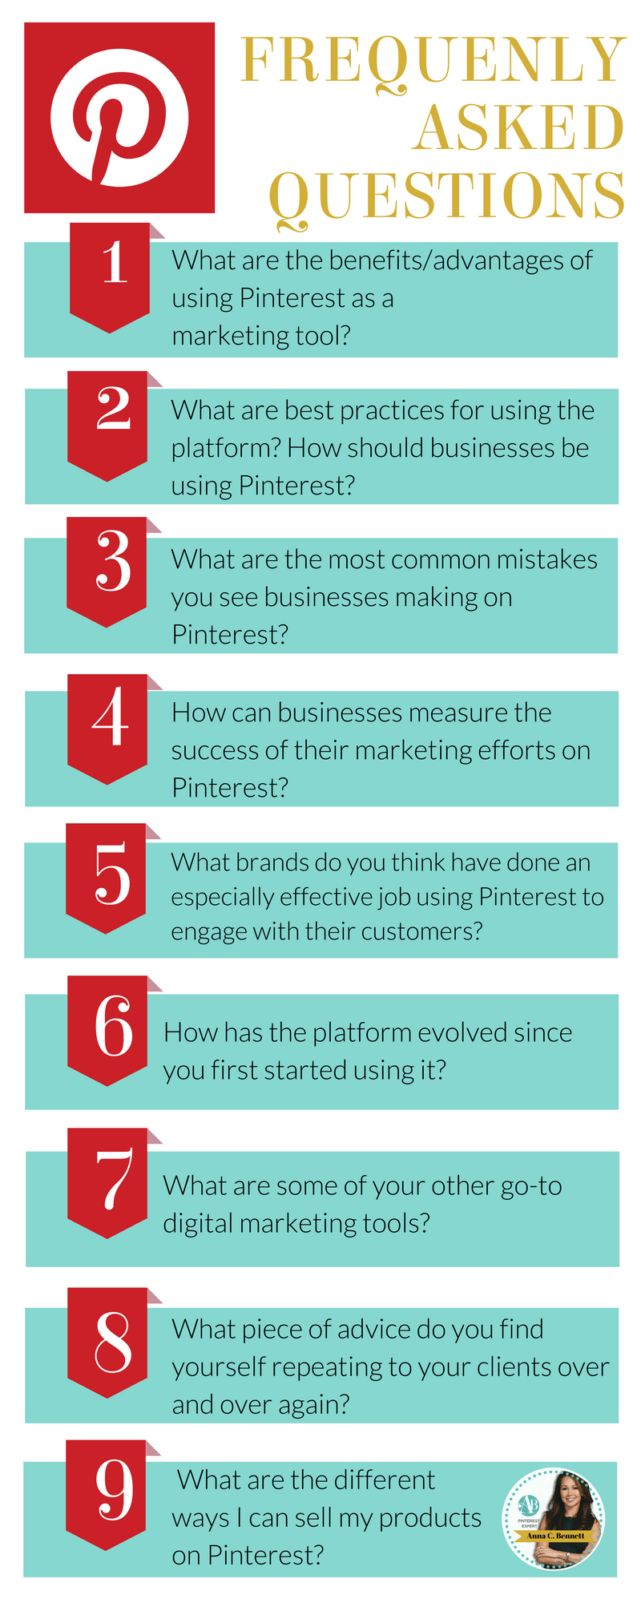 Pinterest Marketing Consultant Reveals The Top 9 Frequently Asked Questions